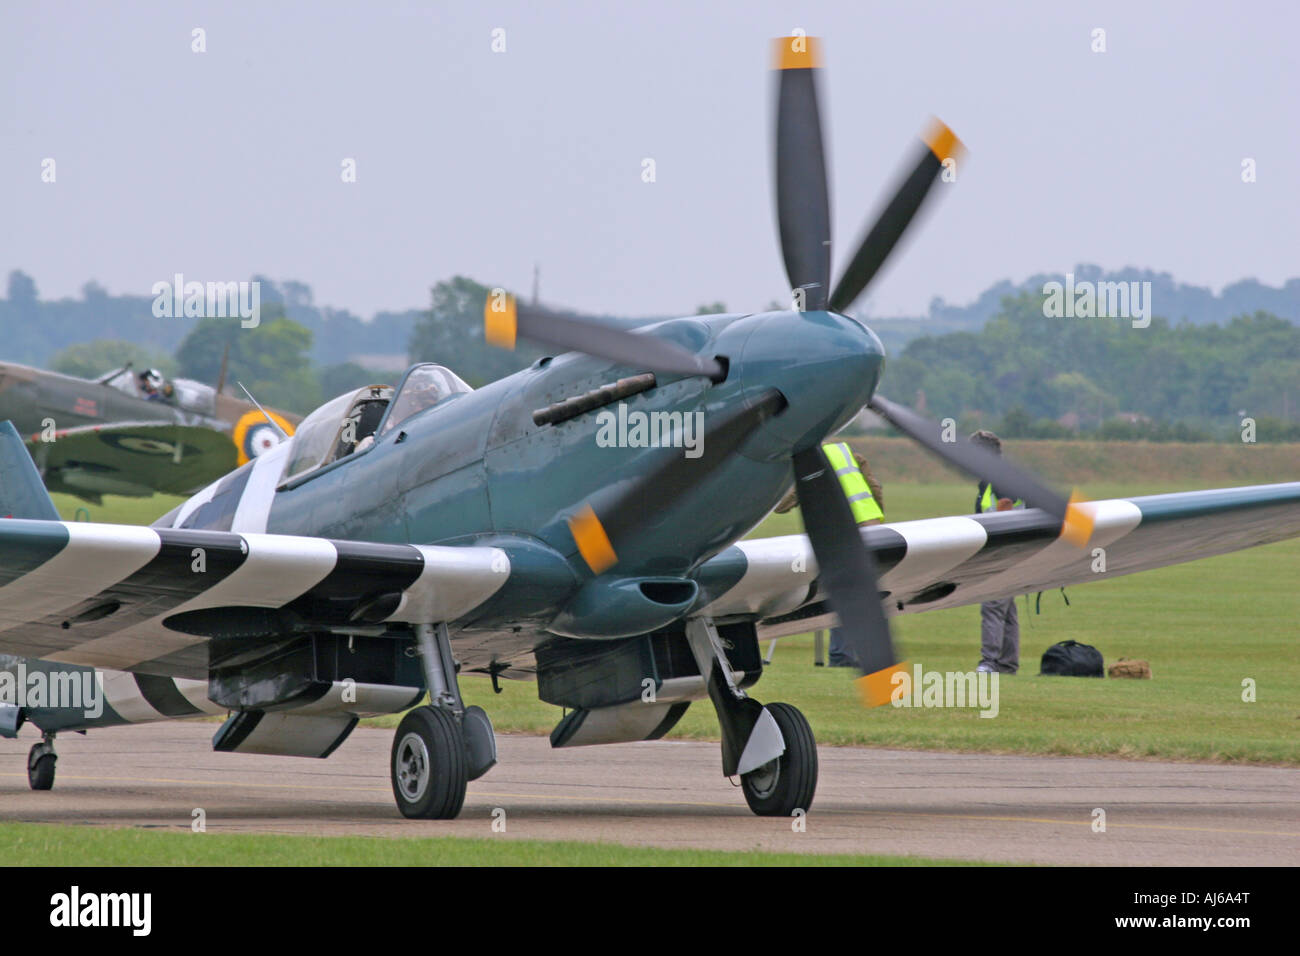 Counter Rotating Propellers : Griffon engined spitfire with contra rotating propellers